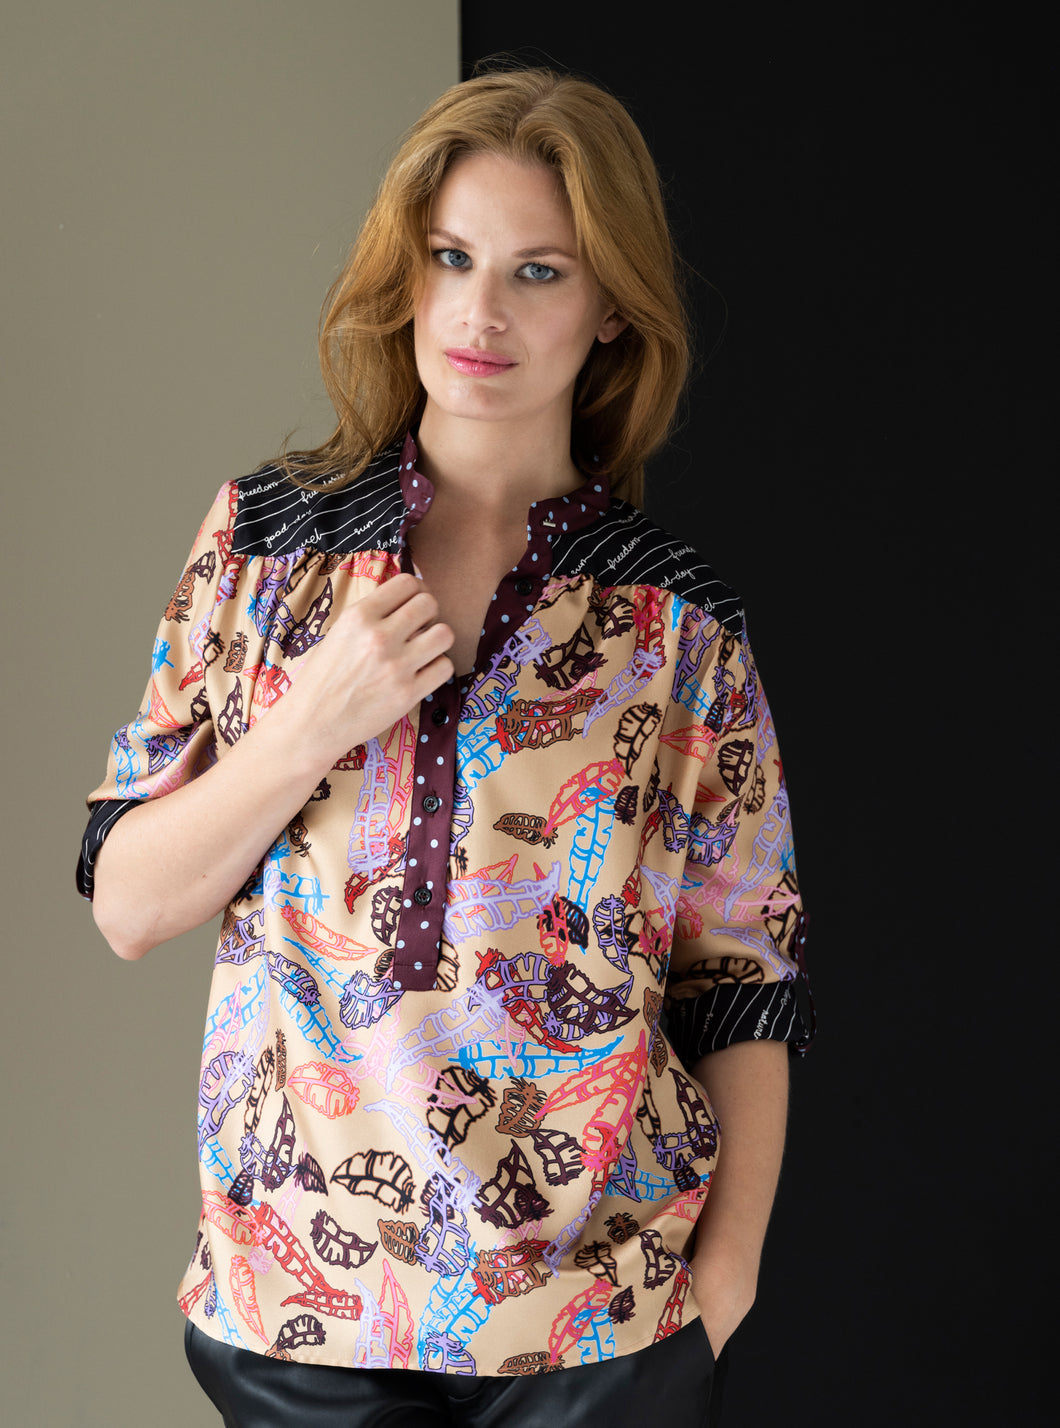 BLISS Blouse / Feathers on Croissant